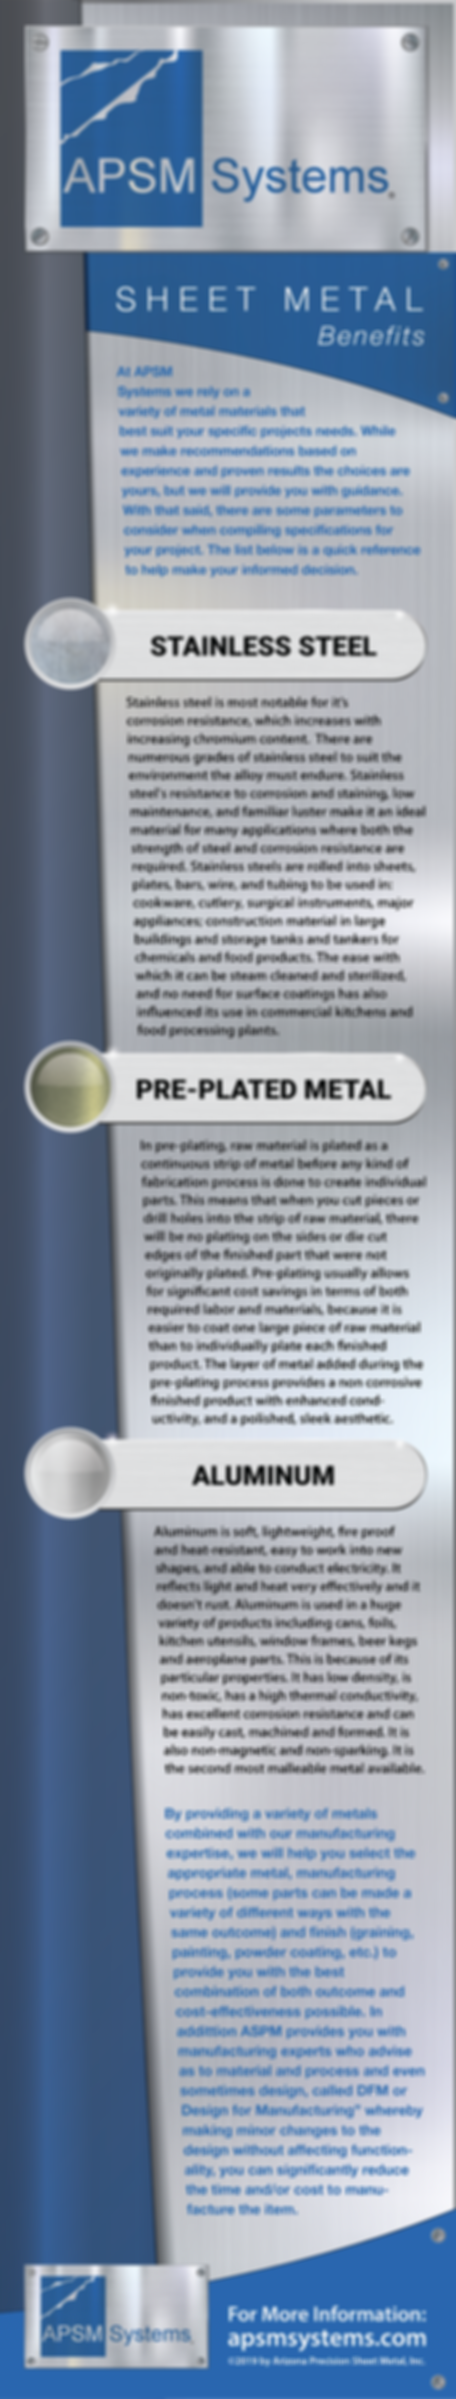 Sheet Metal Types - APSM Systems Infogra